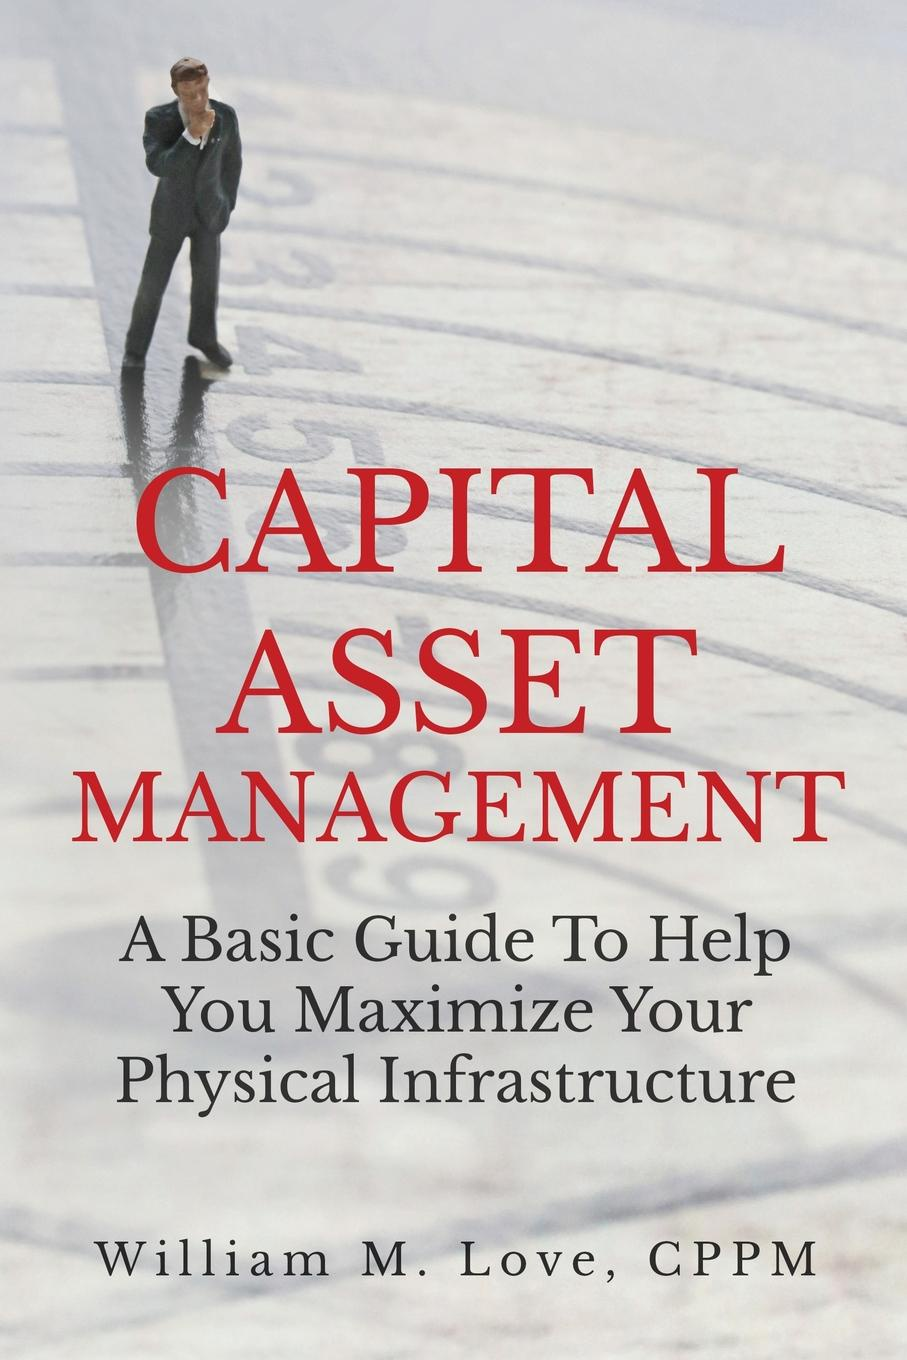 William M. Love Capital Asset Management A Basic Guide To Help You Maximize Your Physical Infrastructure alok kumar and adam scott governance social and physical infrastructure and development